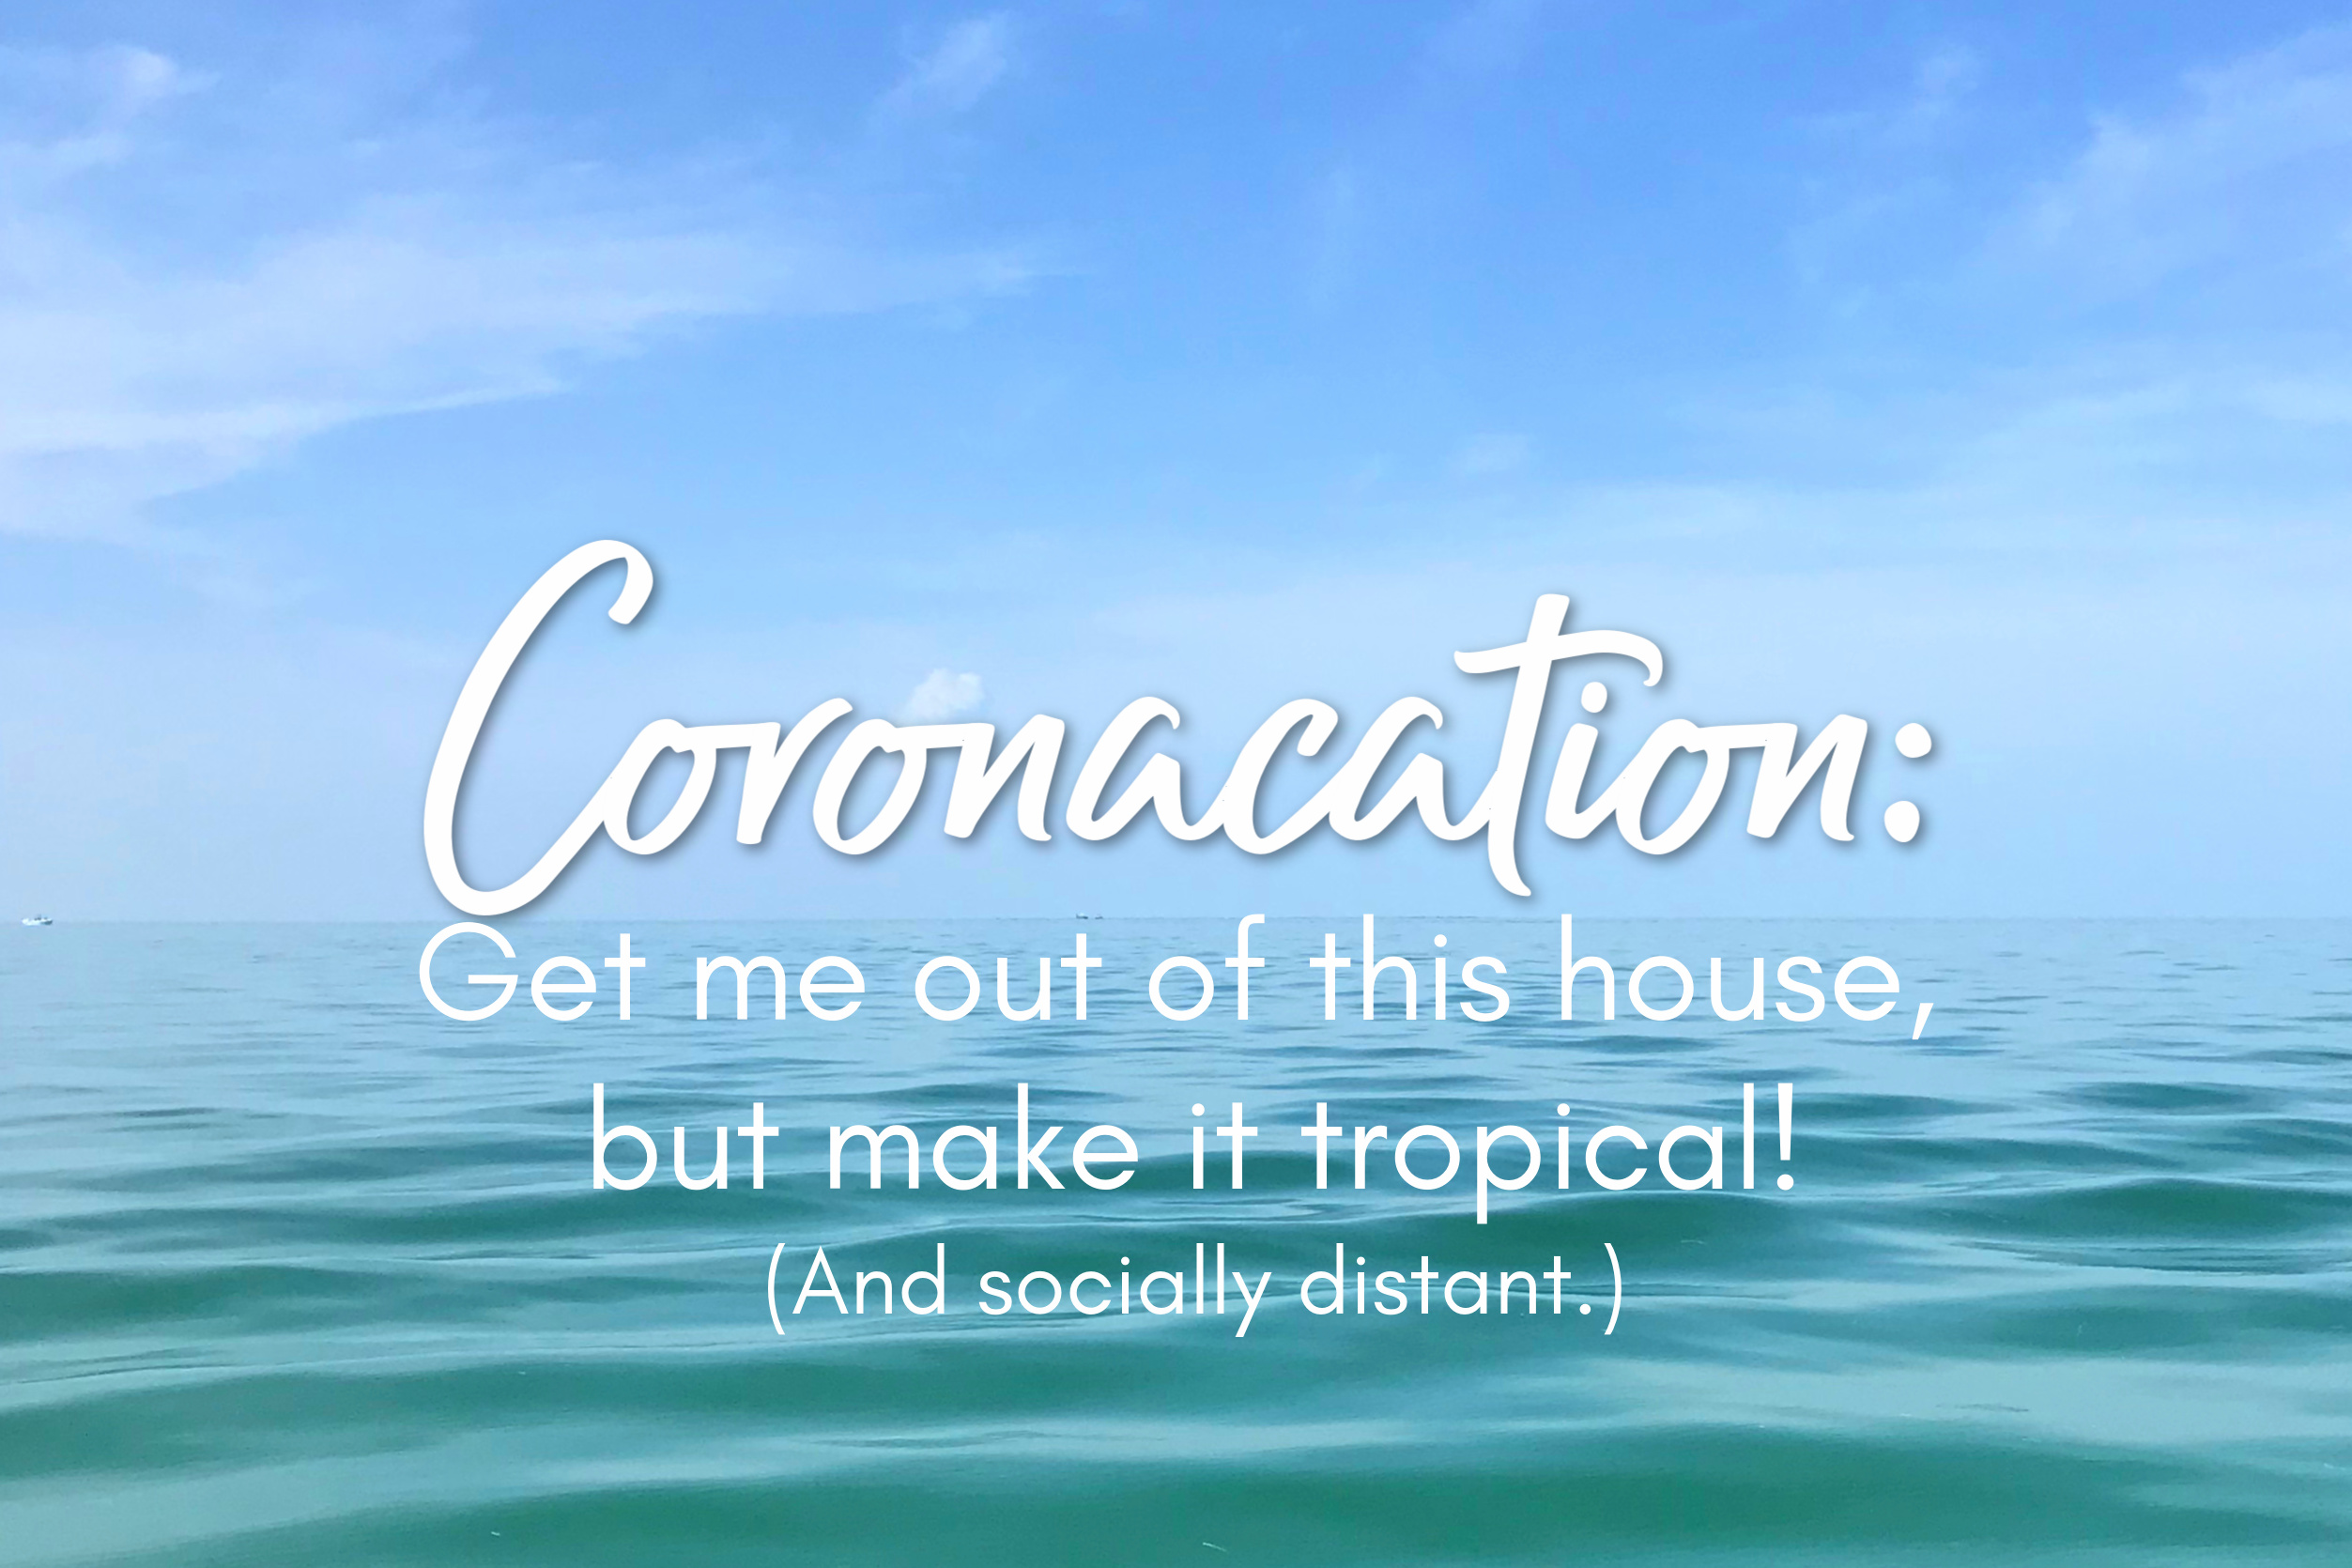 """3 Ways to Make the Most of Your """"Coronacation"""""""